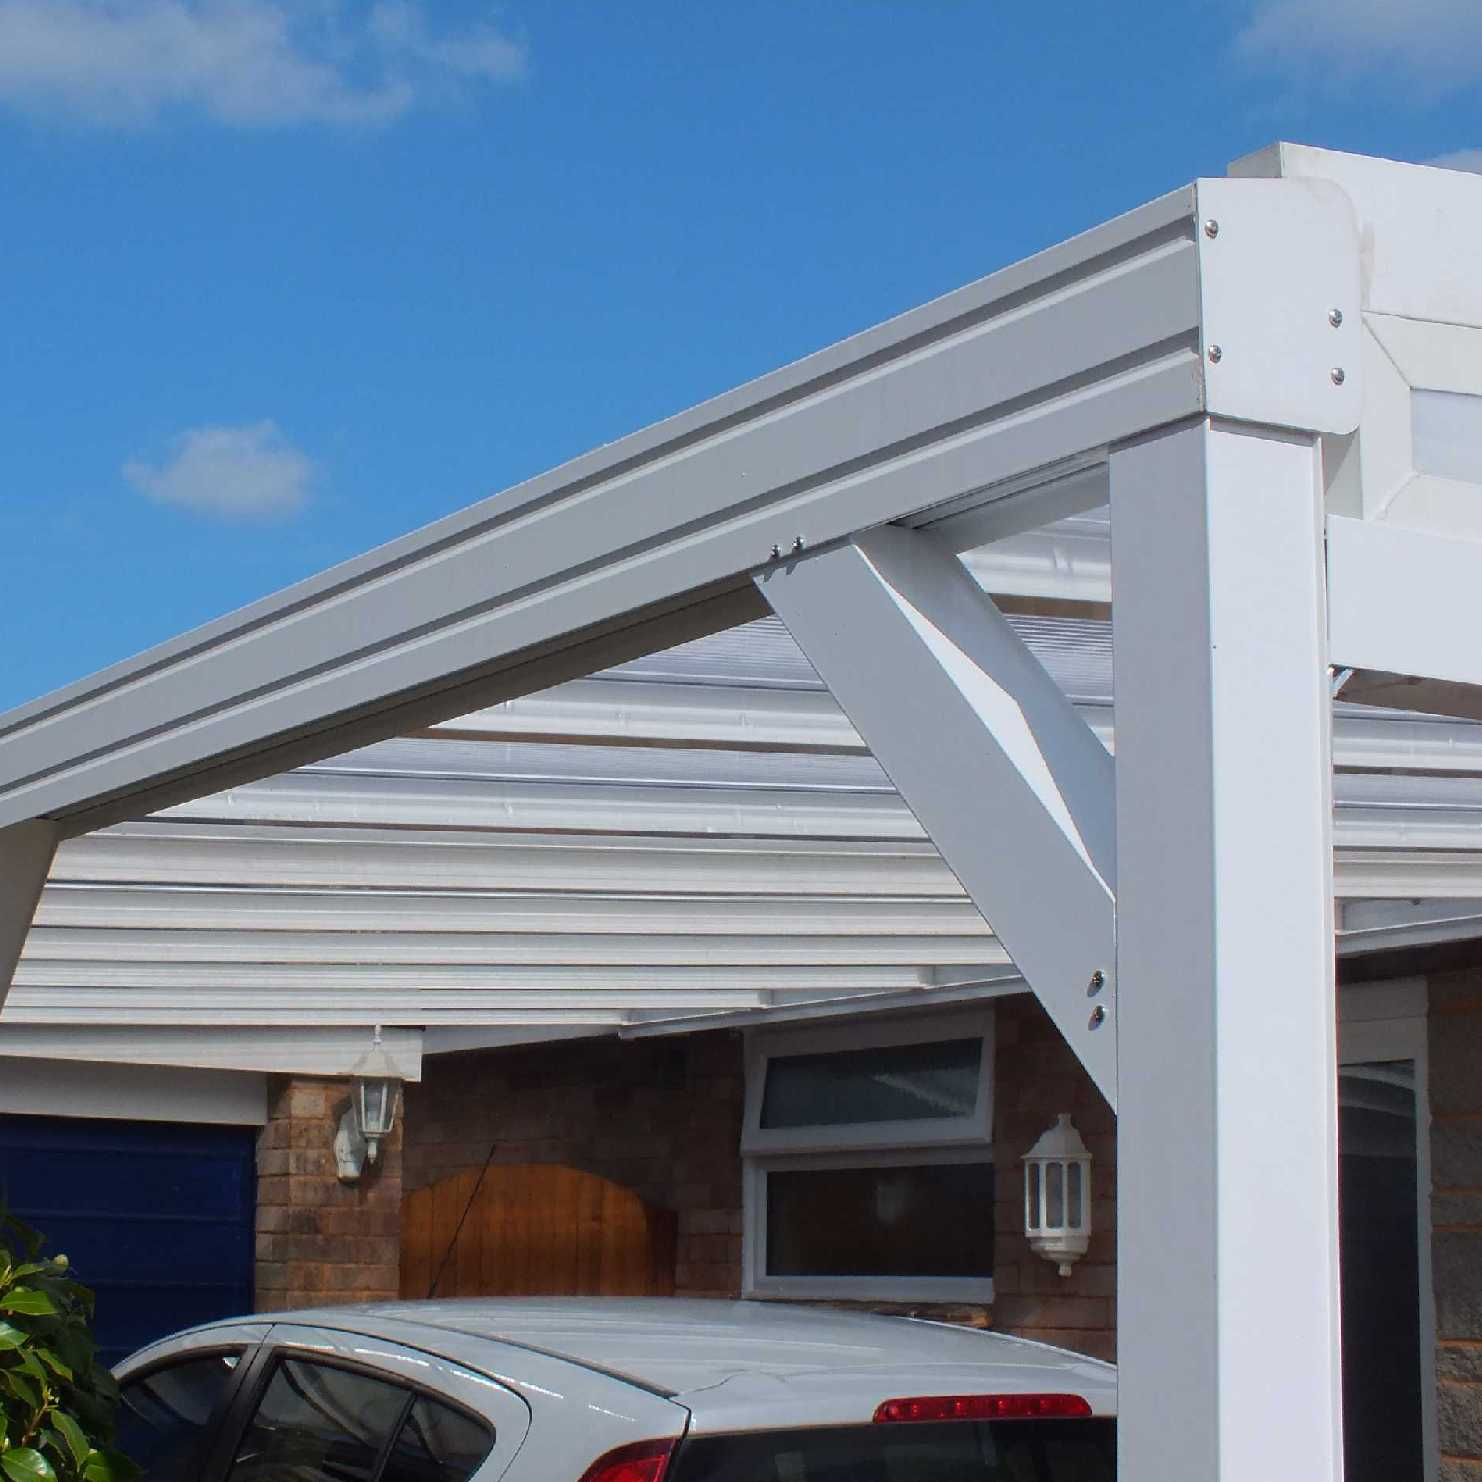 Buy Omega Smart White Lean-To Canopy with 16mm Polycarbonate Glazing - 11.6m (W) x 1.5m (P), (5) Supporting Posts online today